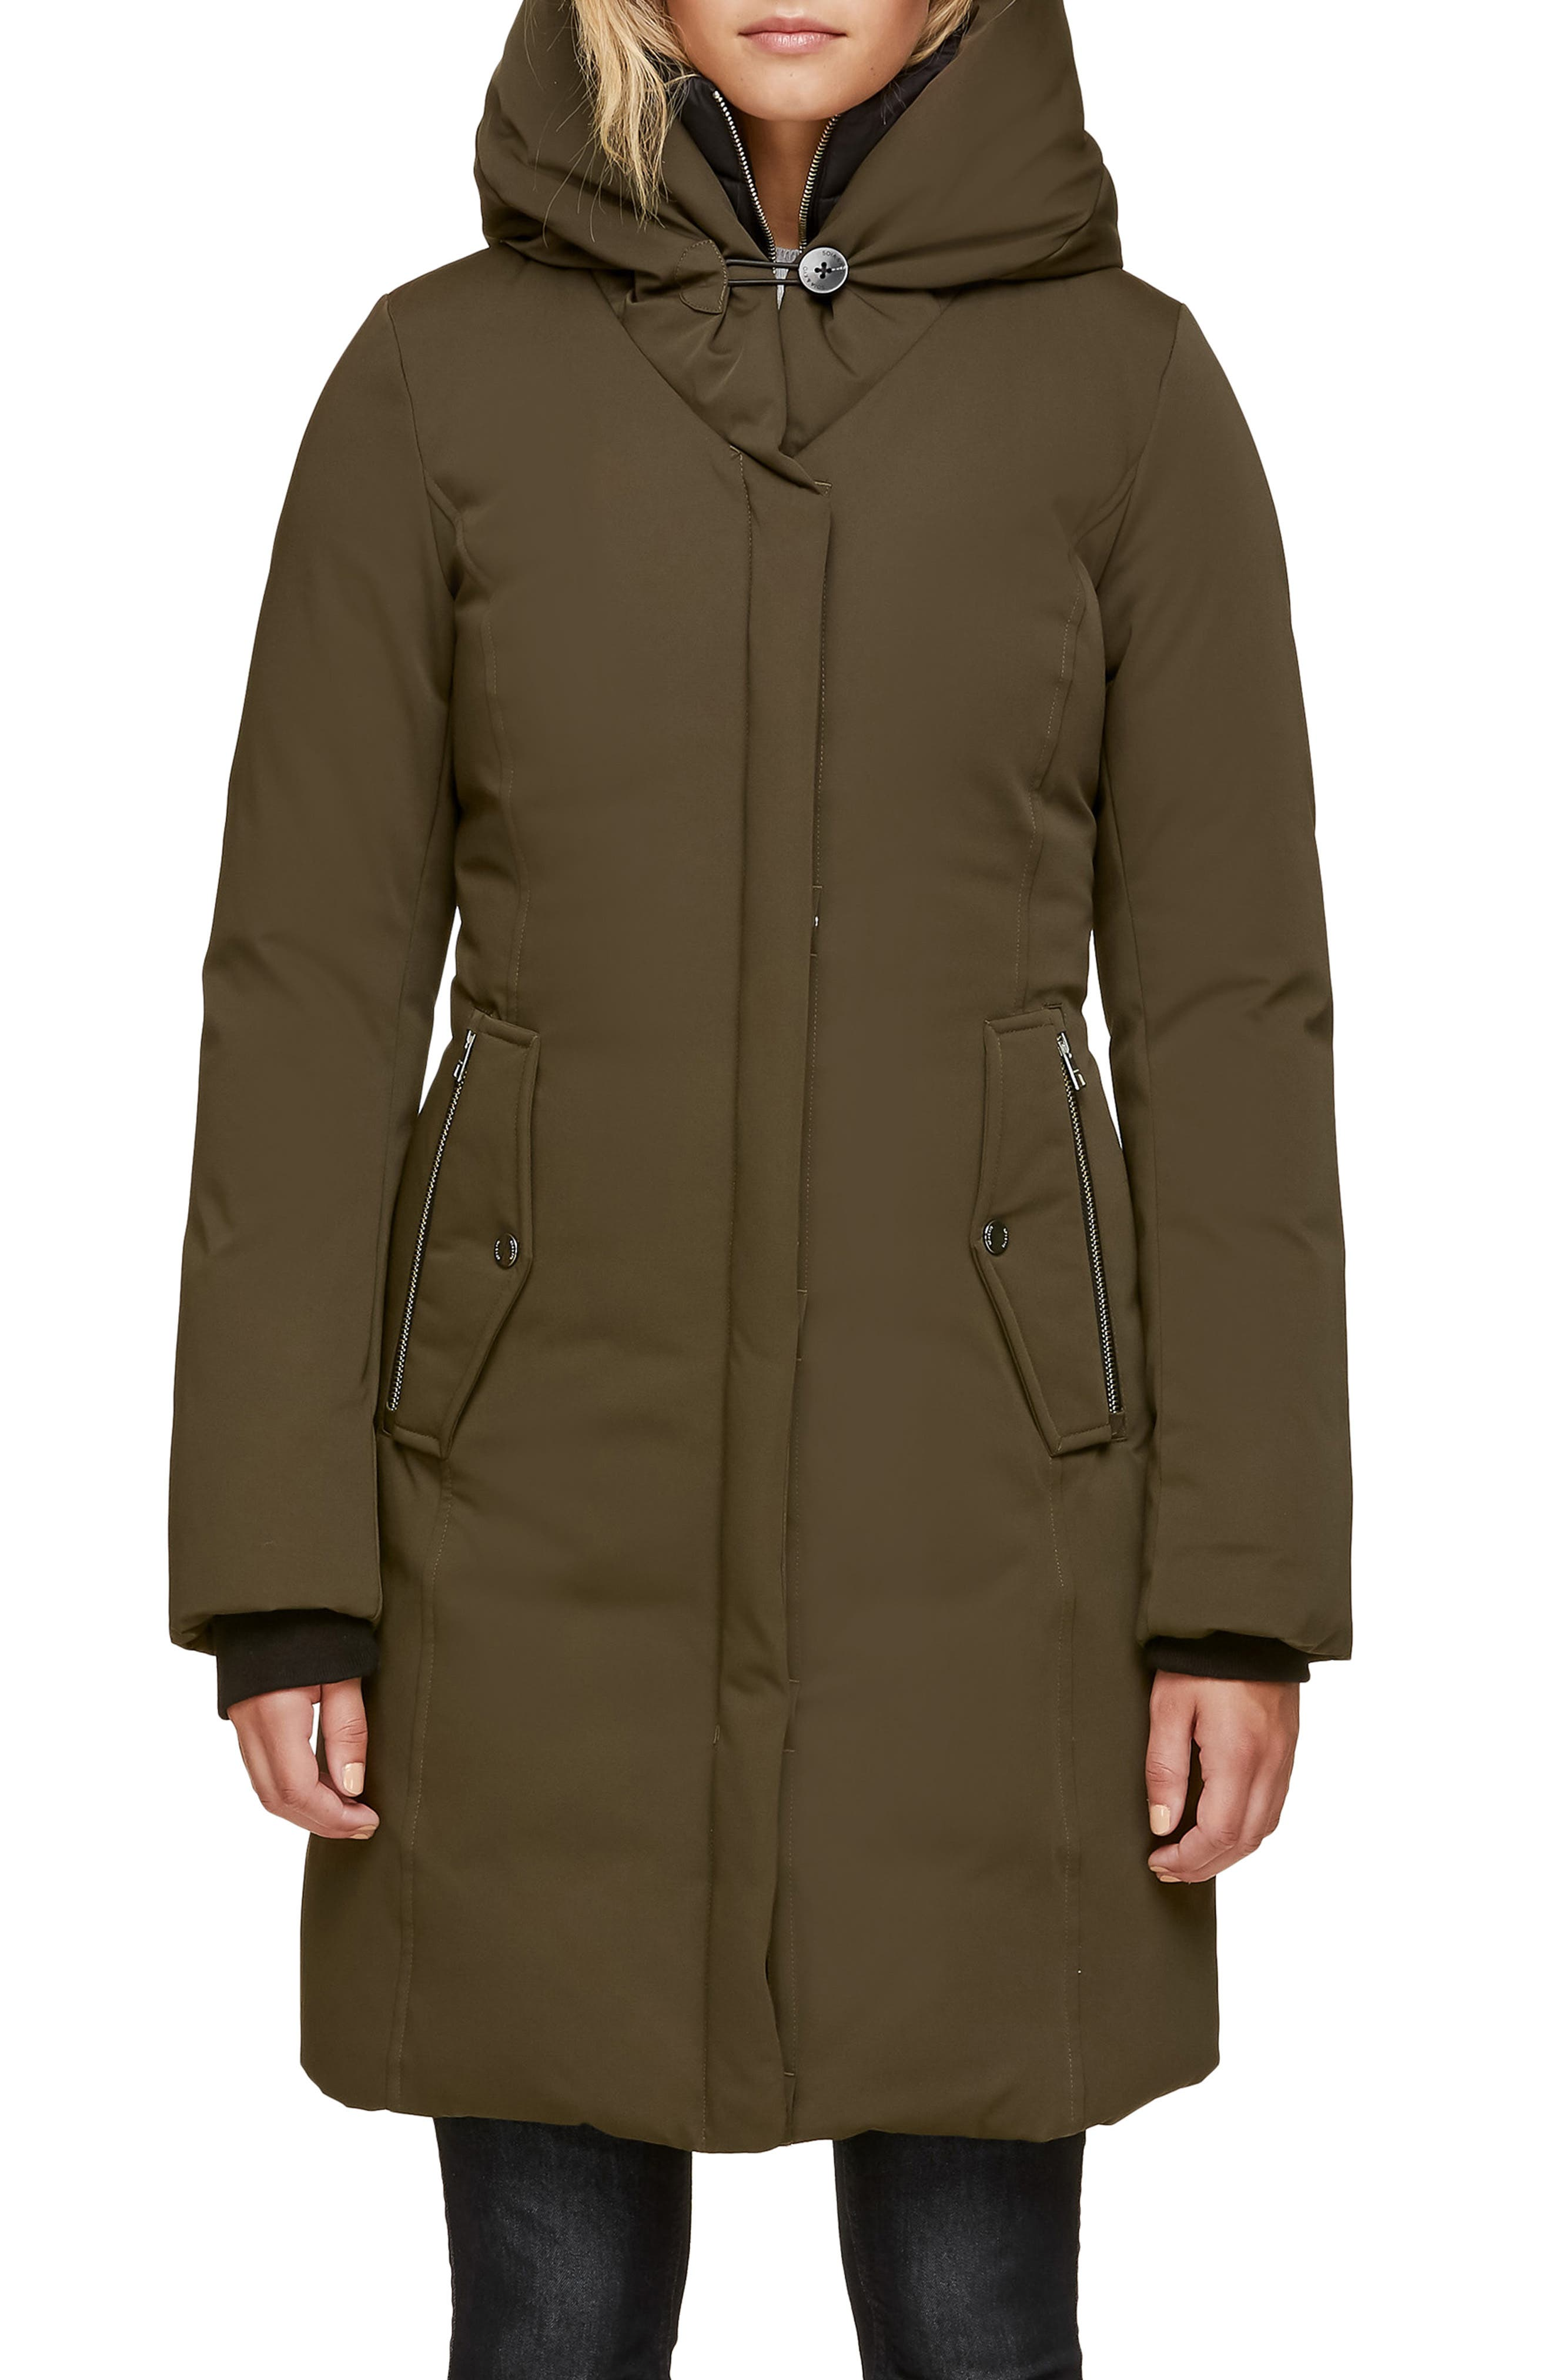 SOIA & KYO,                             Slim Fit Hooded Down Coat,                             Main thumbnail 1, color,                             ARMY